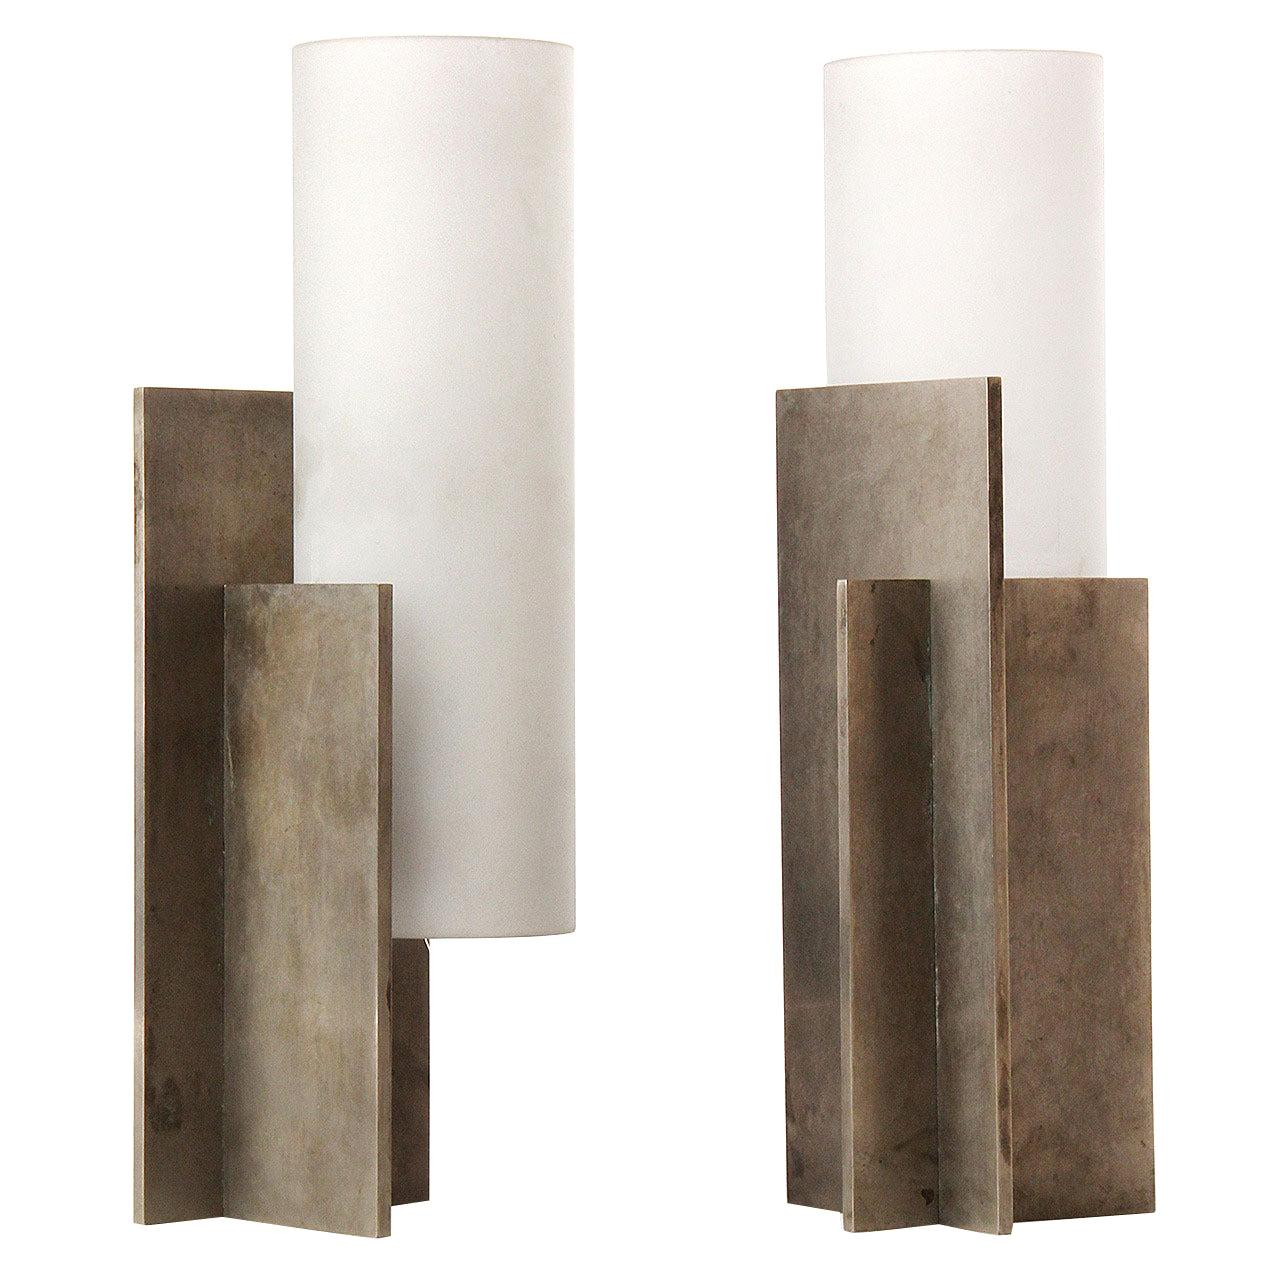 1940s French Modernist Steel and Glass Table Lamps by Boris Lacroix